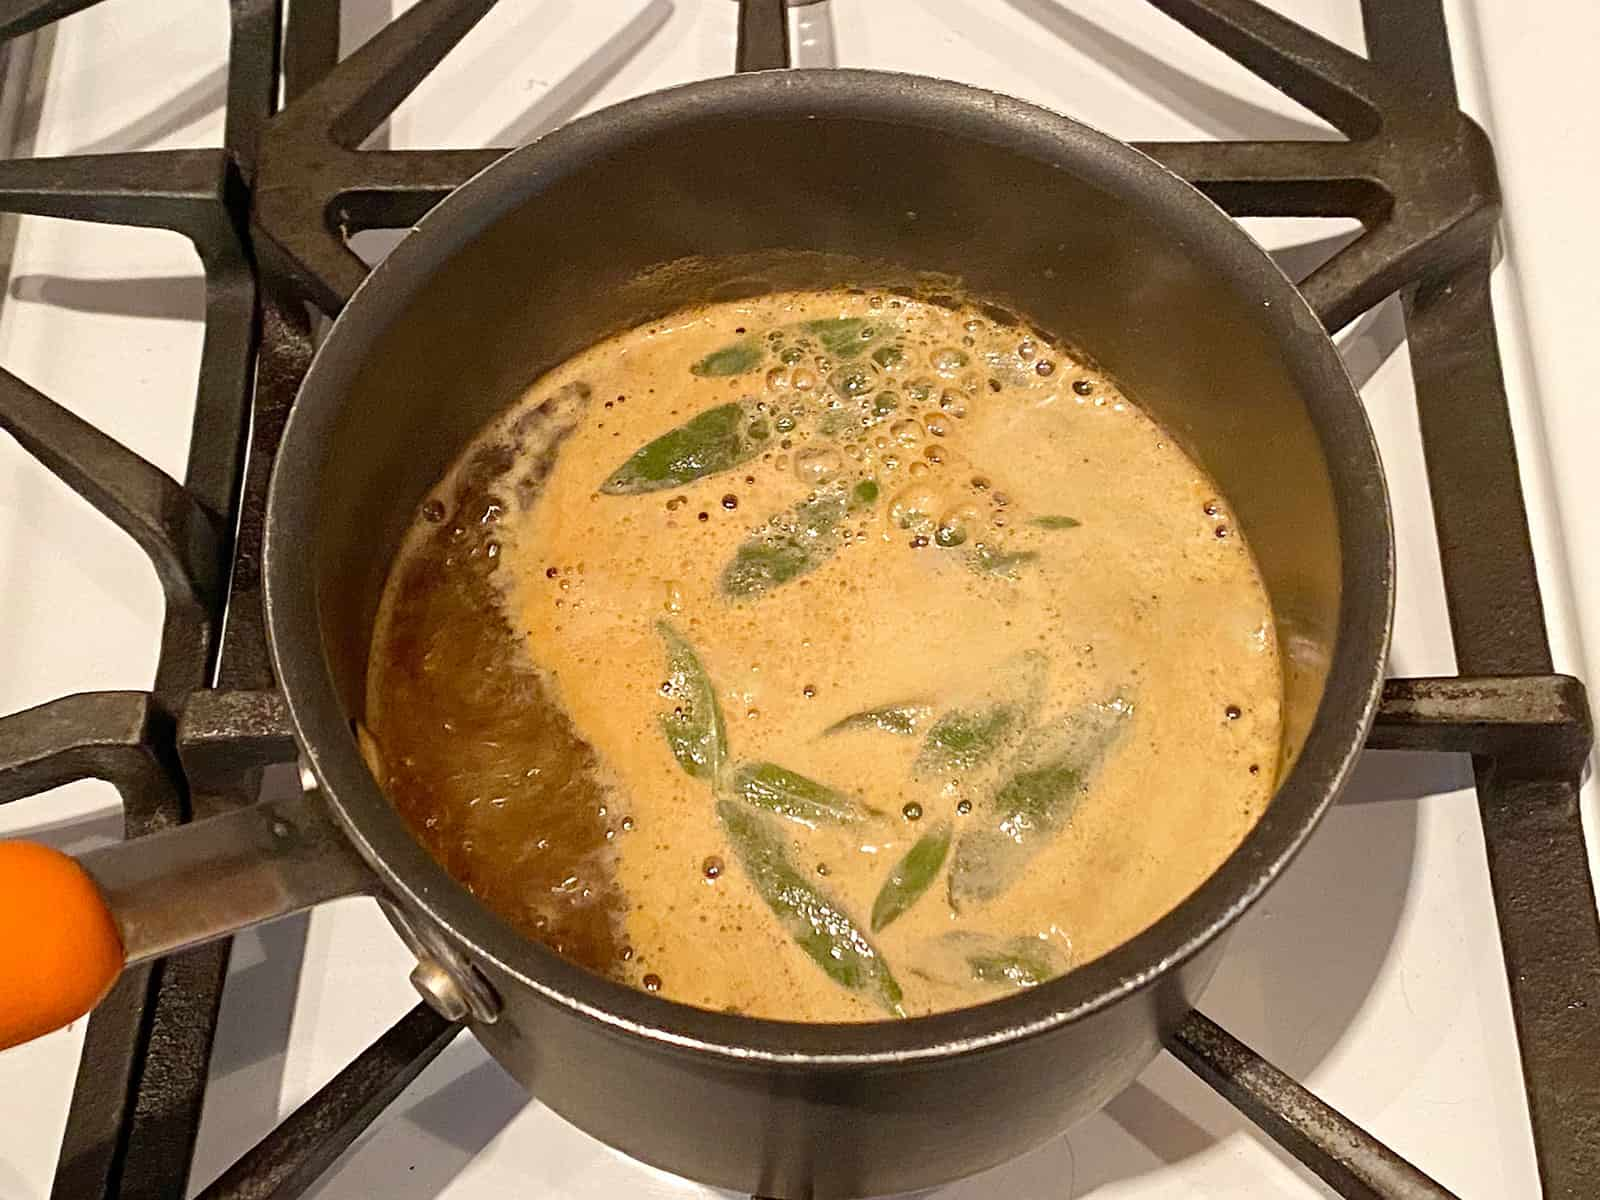 Apple cider, brown sugar, and sage simmering in a pot.